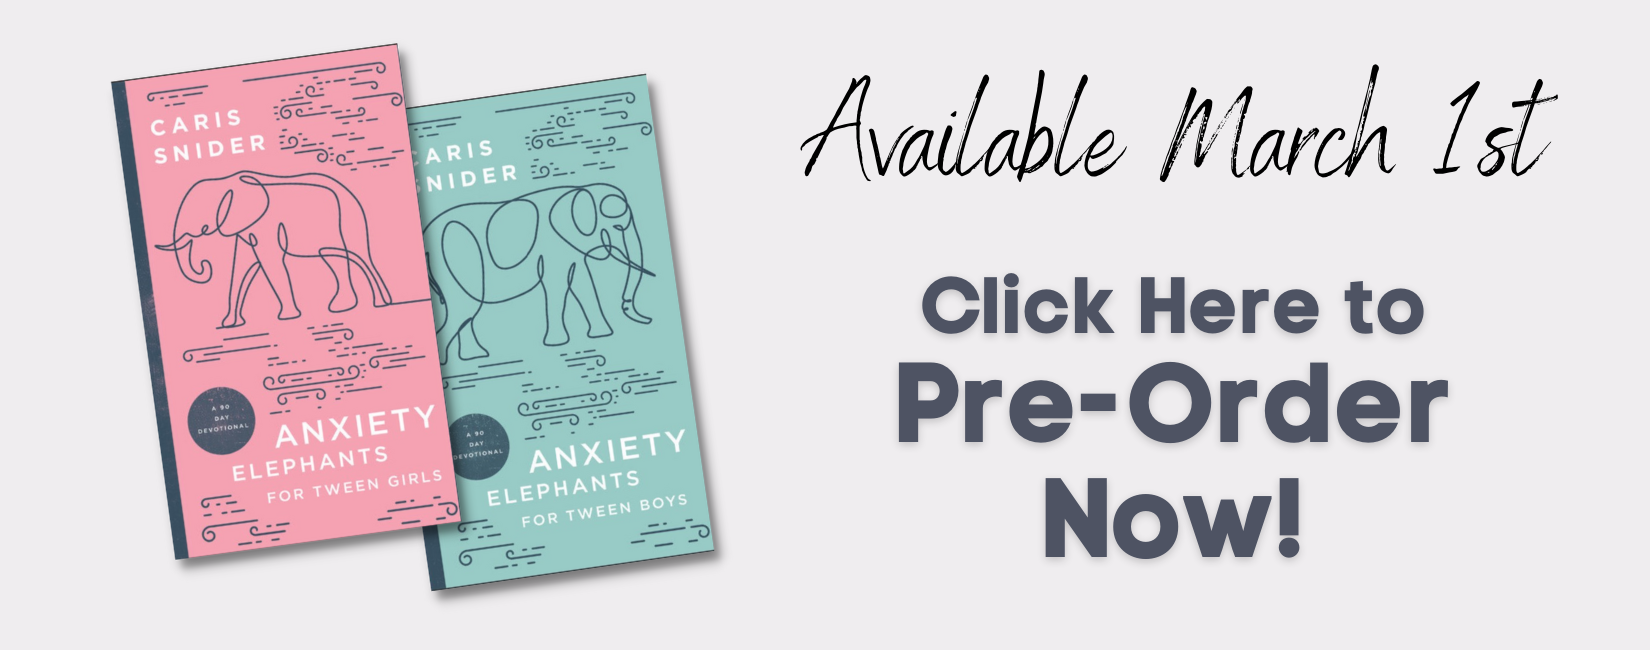 Anxiety Elephants for Tweens - Pre-Order Now